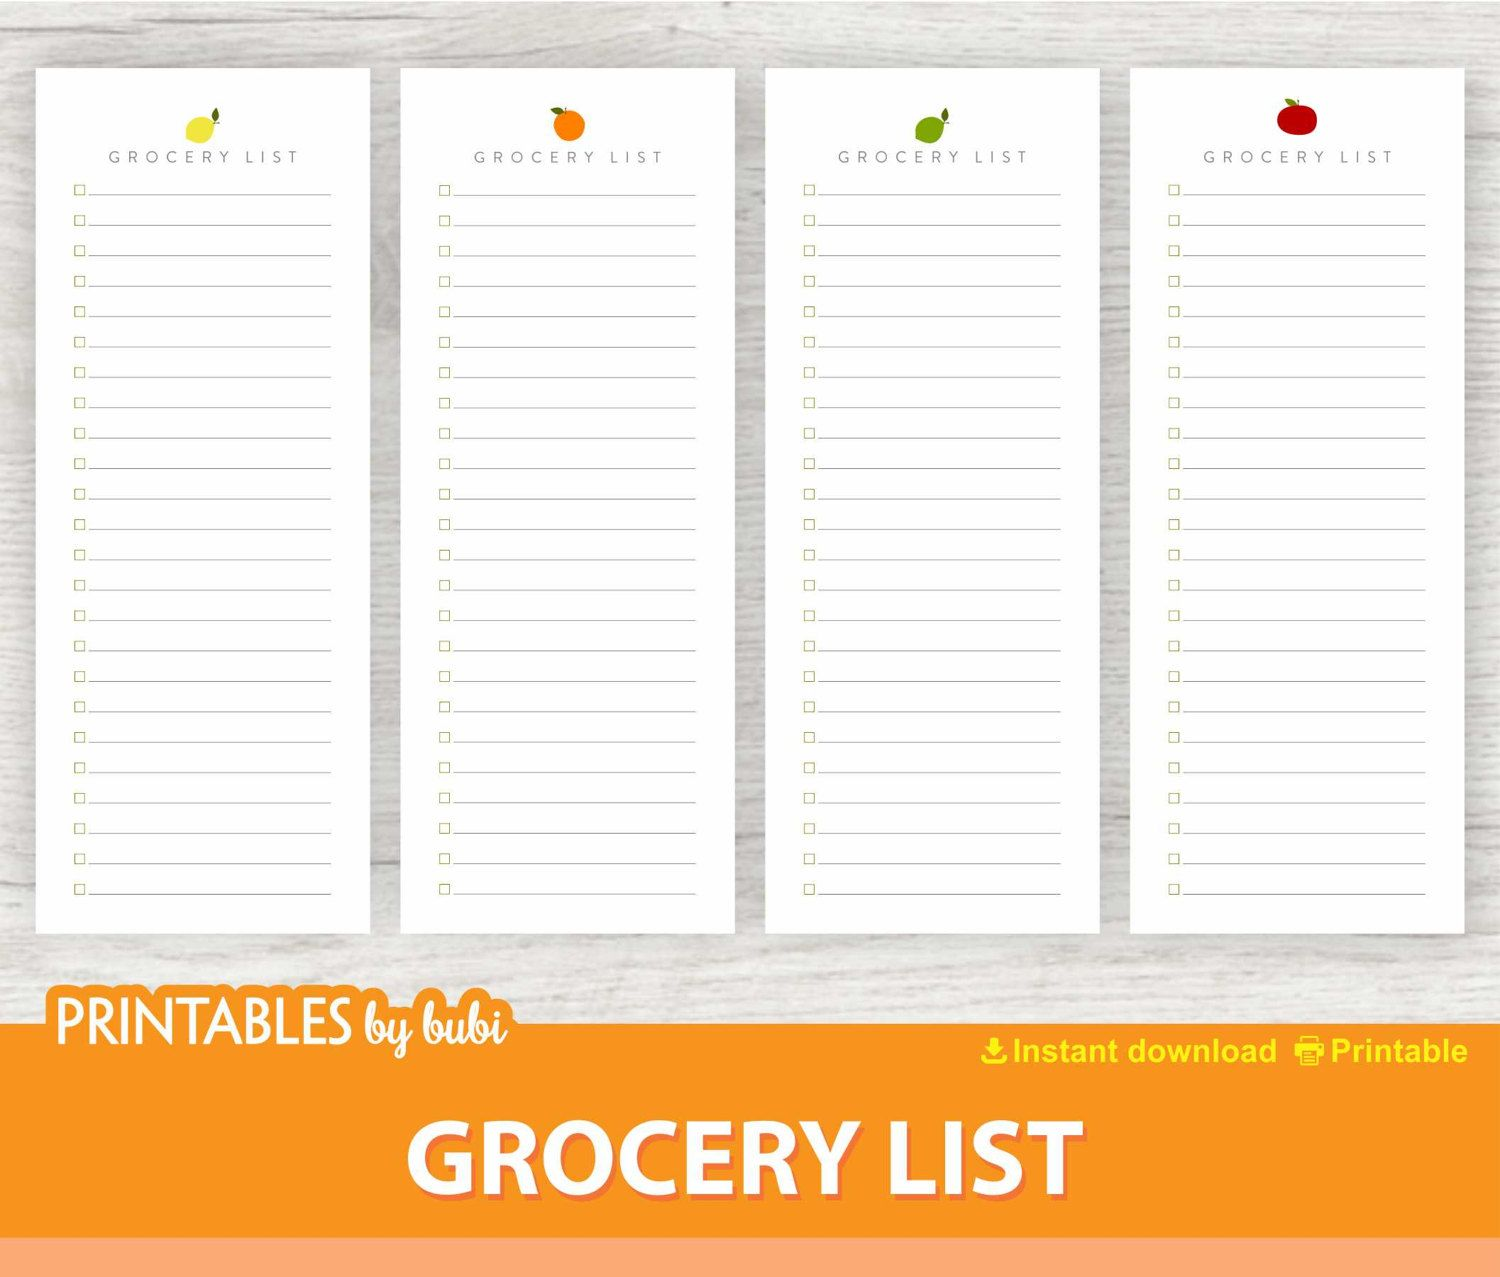 Shopping List Printable Grocery List Pad Printable Notepad Half Letter Page 4 25 X 11 Grocery List Pad Grocery List Printable Grocery Shopping List Printable Grocery list with prices template